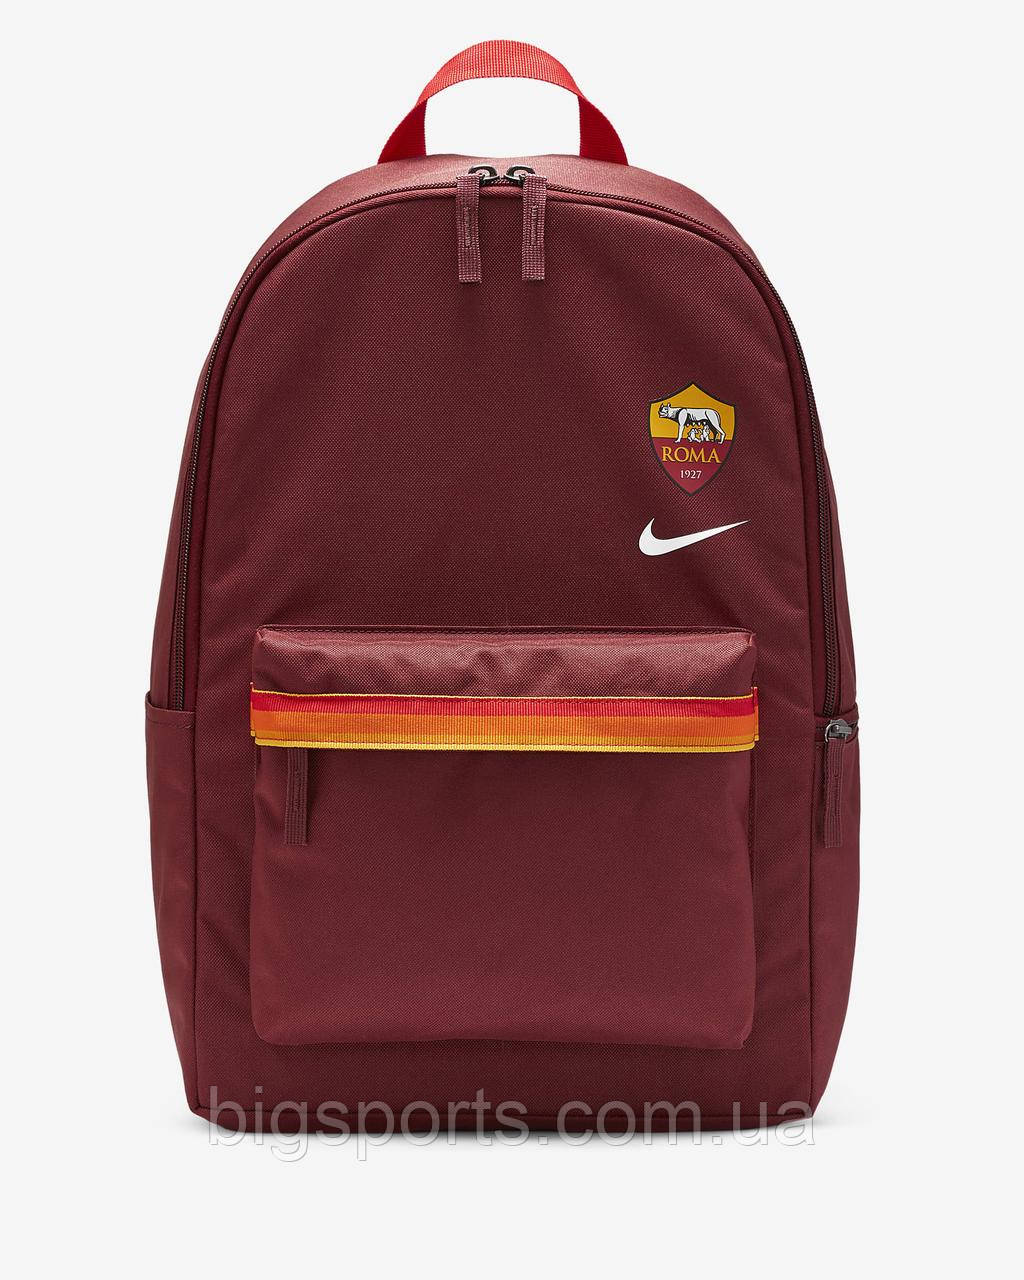 Рюкзак спортивный Nike AS Roma Stadium Backpack (арт. CQ8389-613)